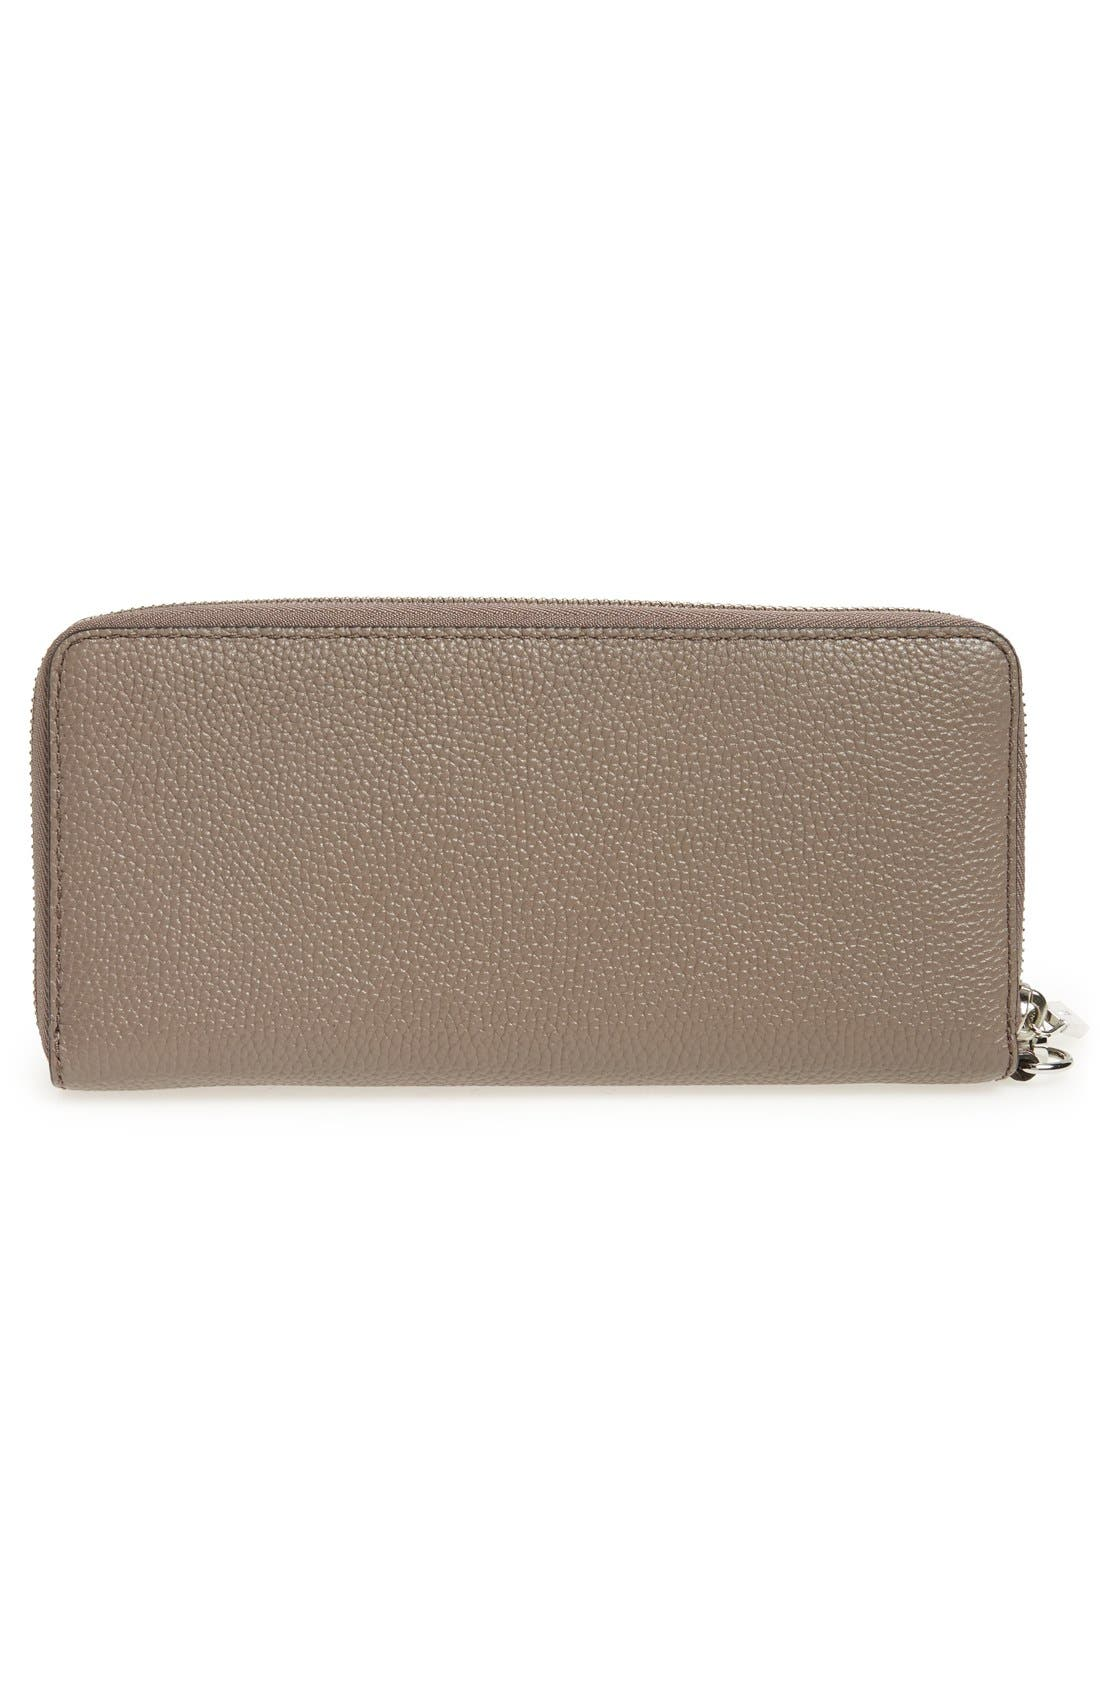 'Mercer' Leather Continental Wallet,                             Alternate thumbnail 28, color,